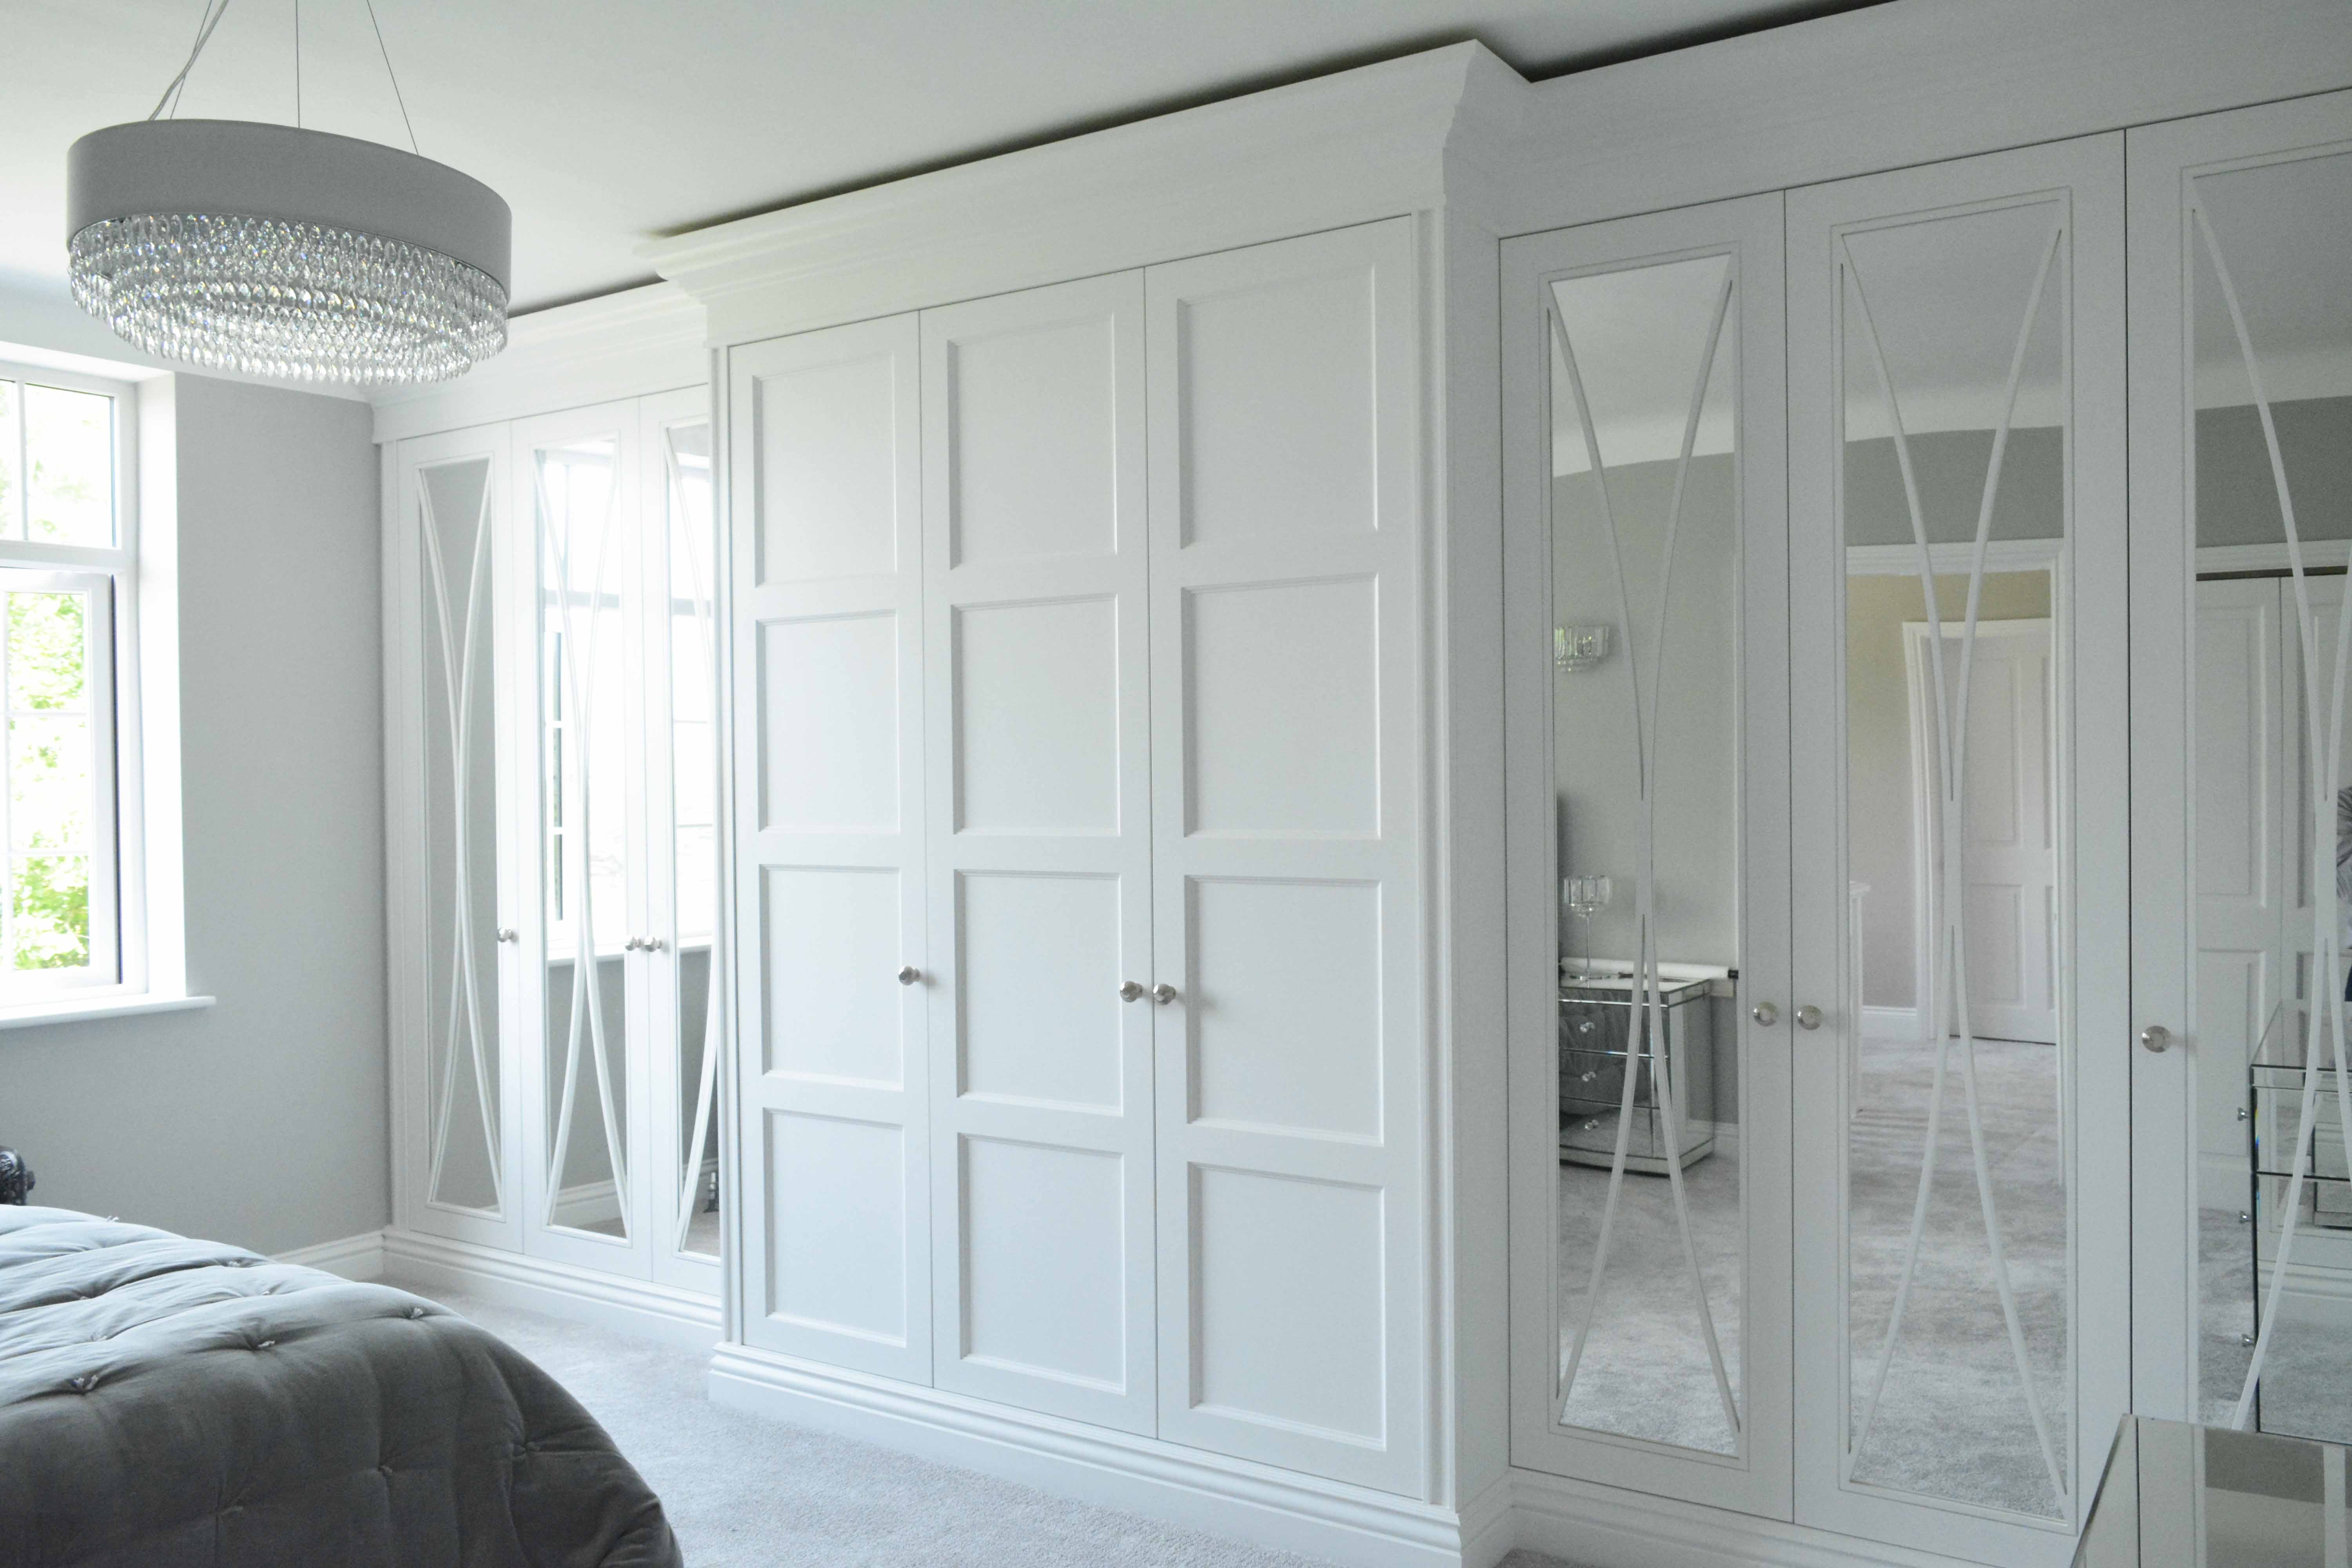 Luxury Fitted Wardrobes Boreham Wood Hertfordshire The Heritage Regarding Fitted Wooden Wardrobes (#13 of 15)